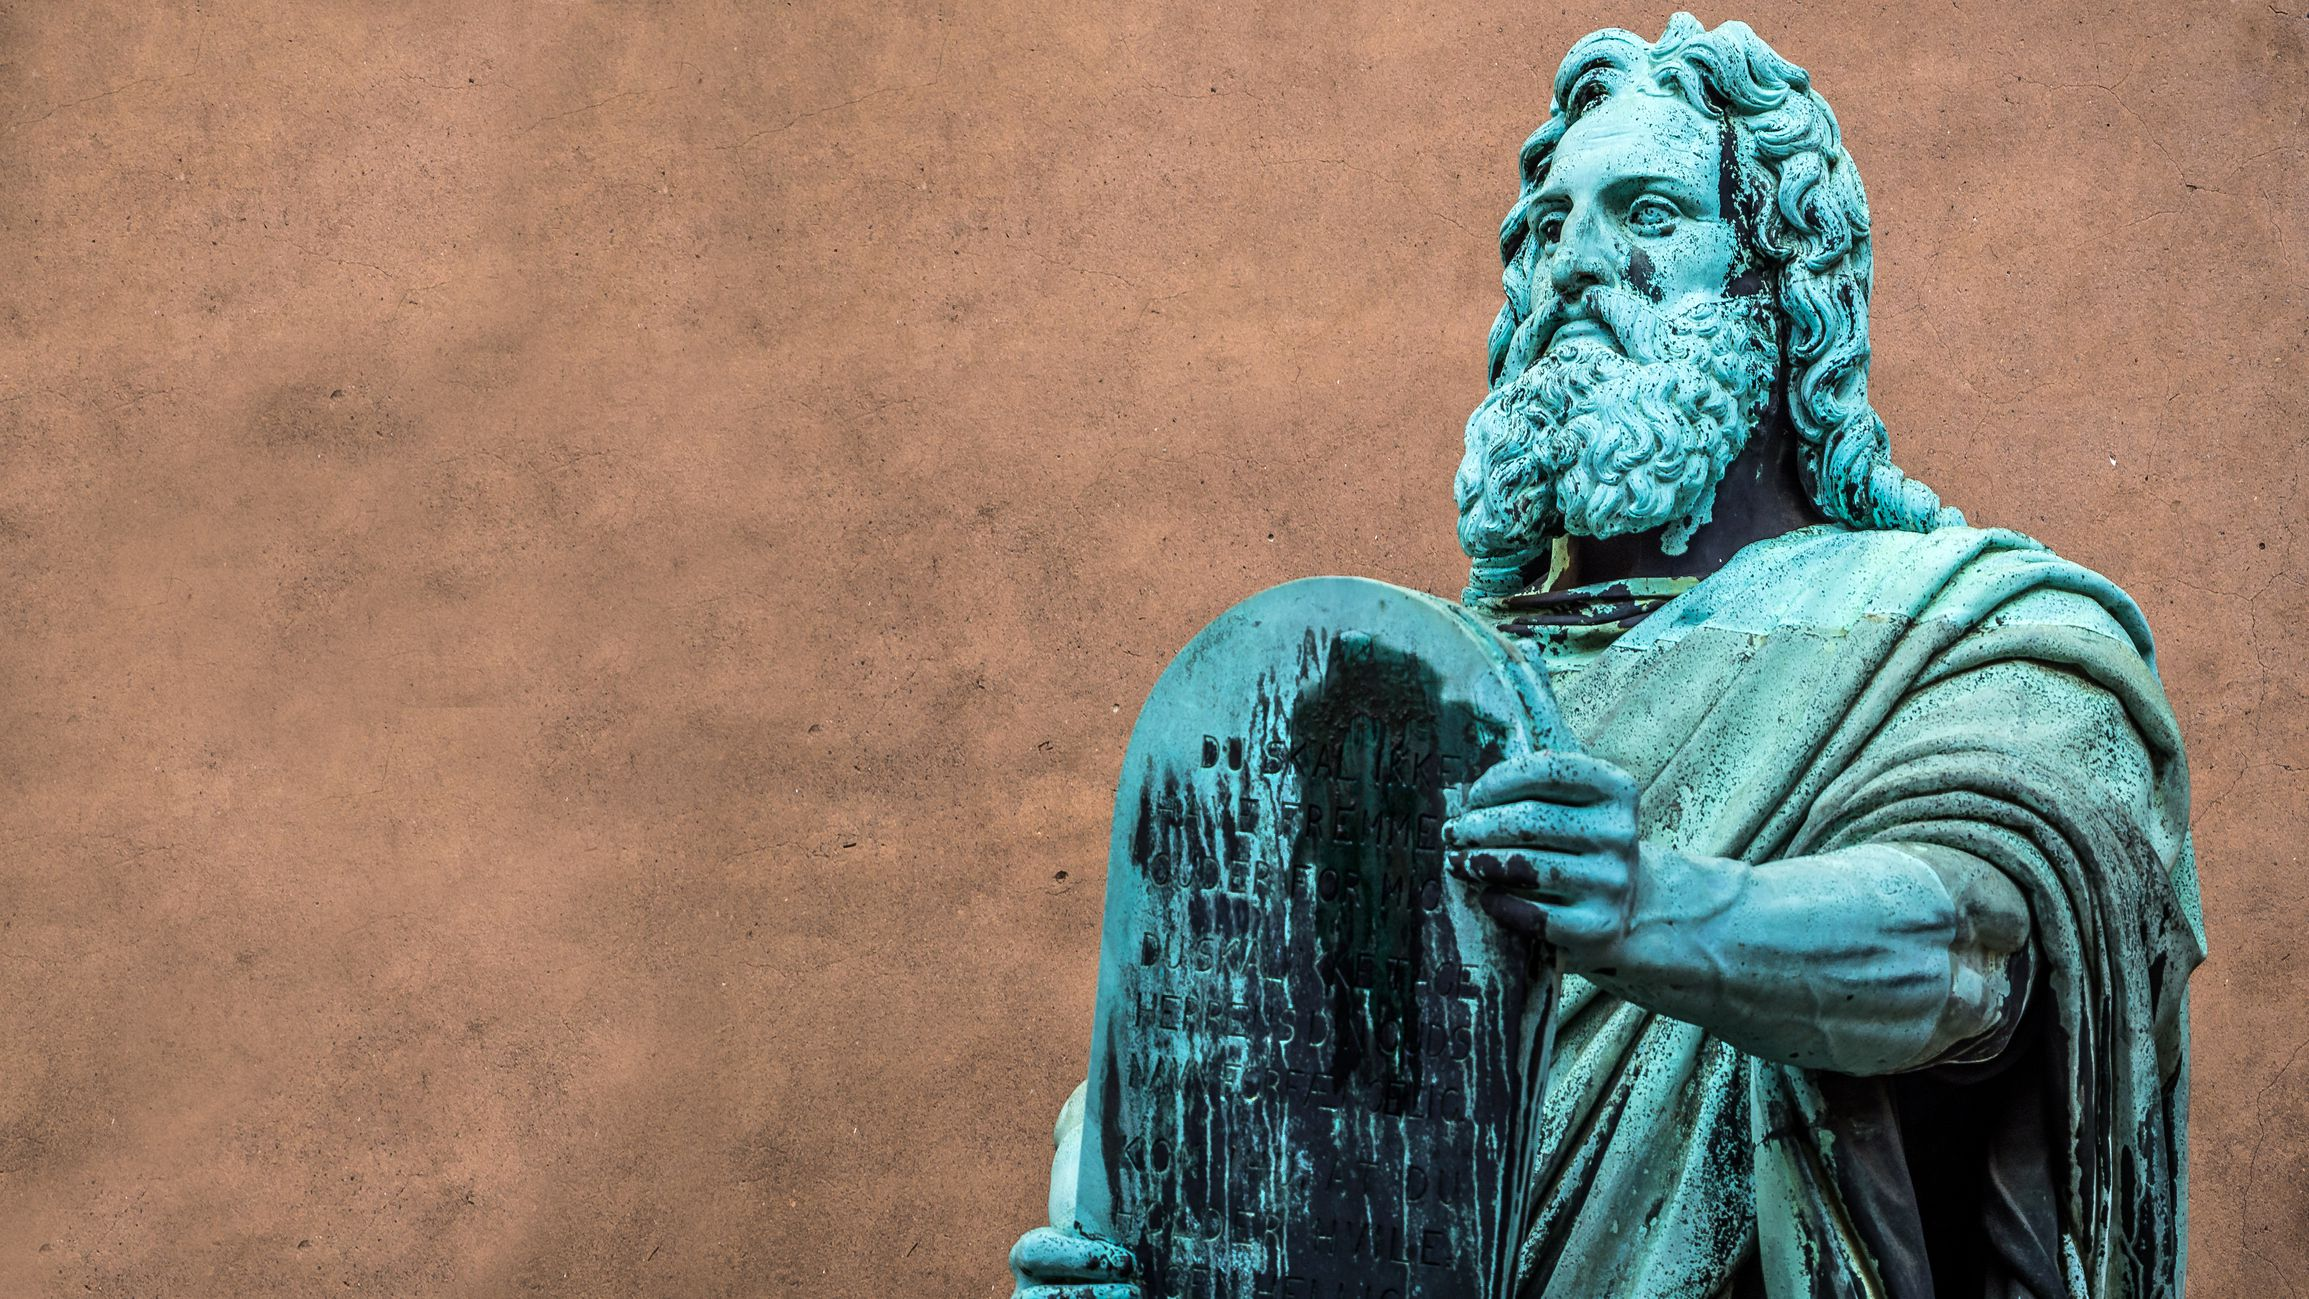 Biography of Moses, Leader of the Abrahamic Religions